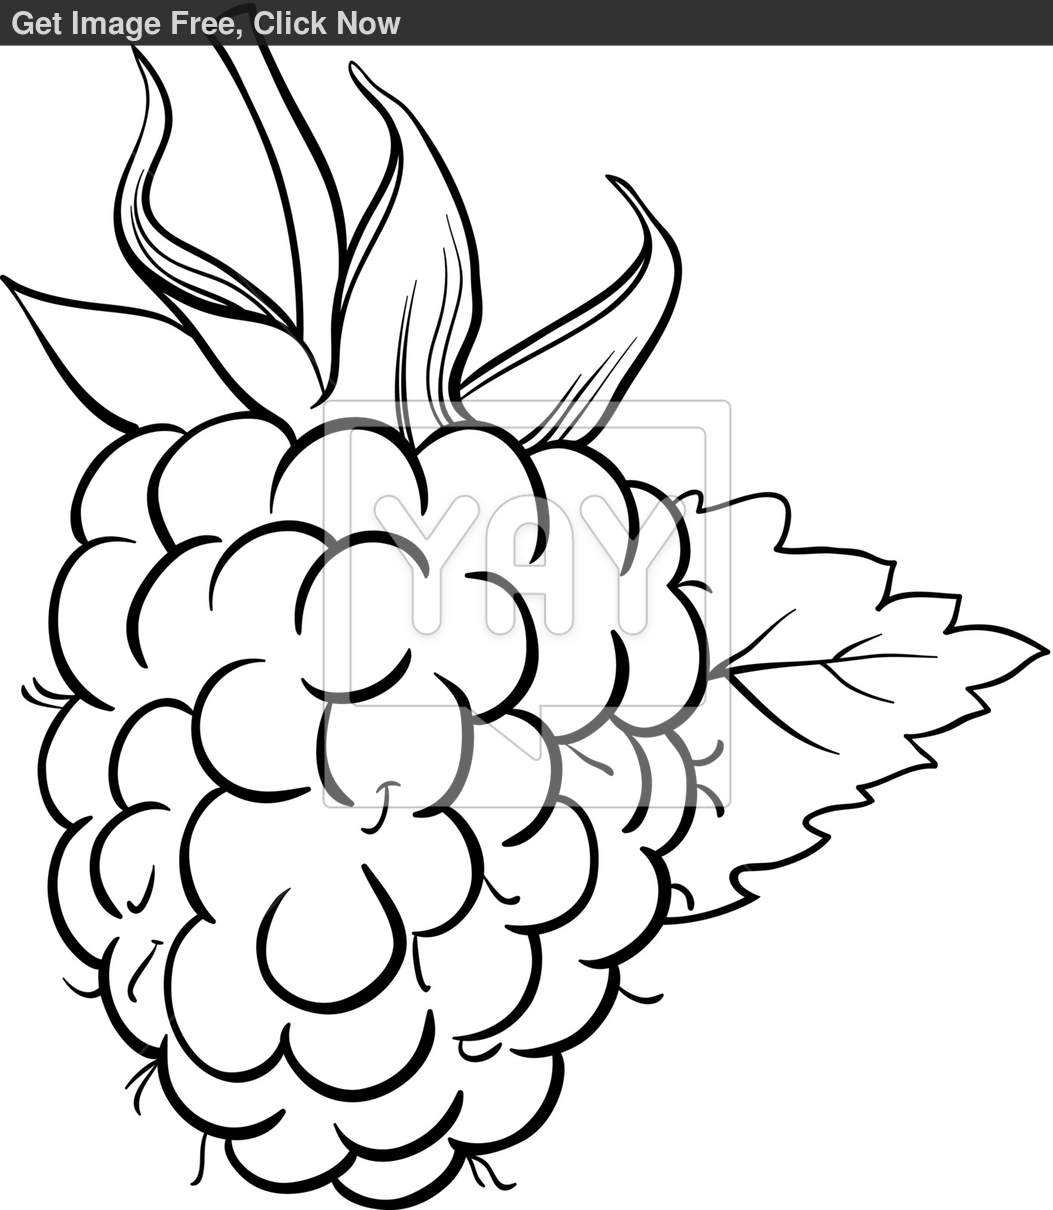 Raspberry coloring #20, Download drawings